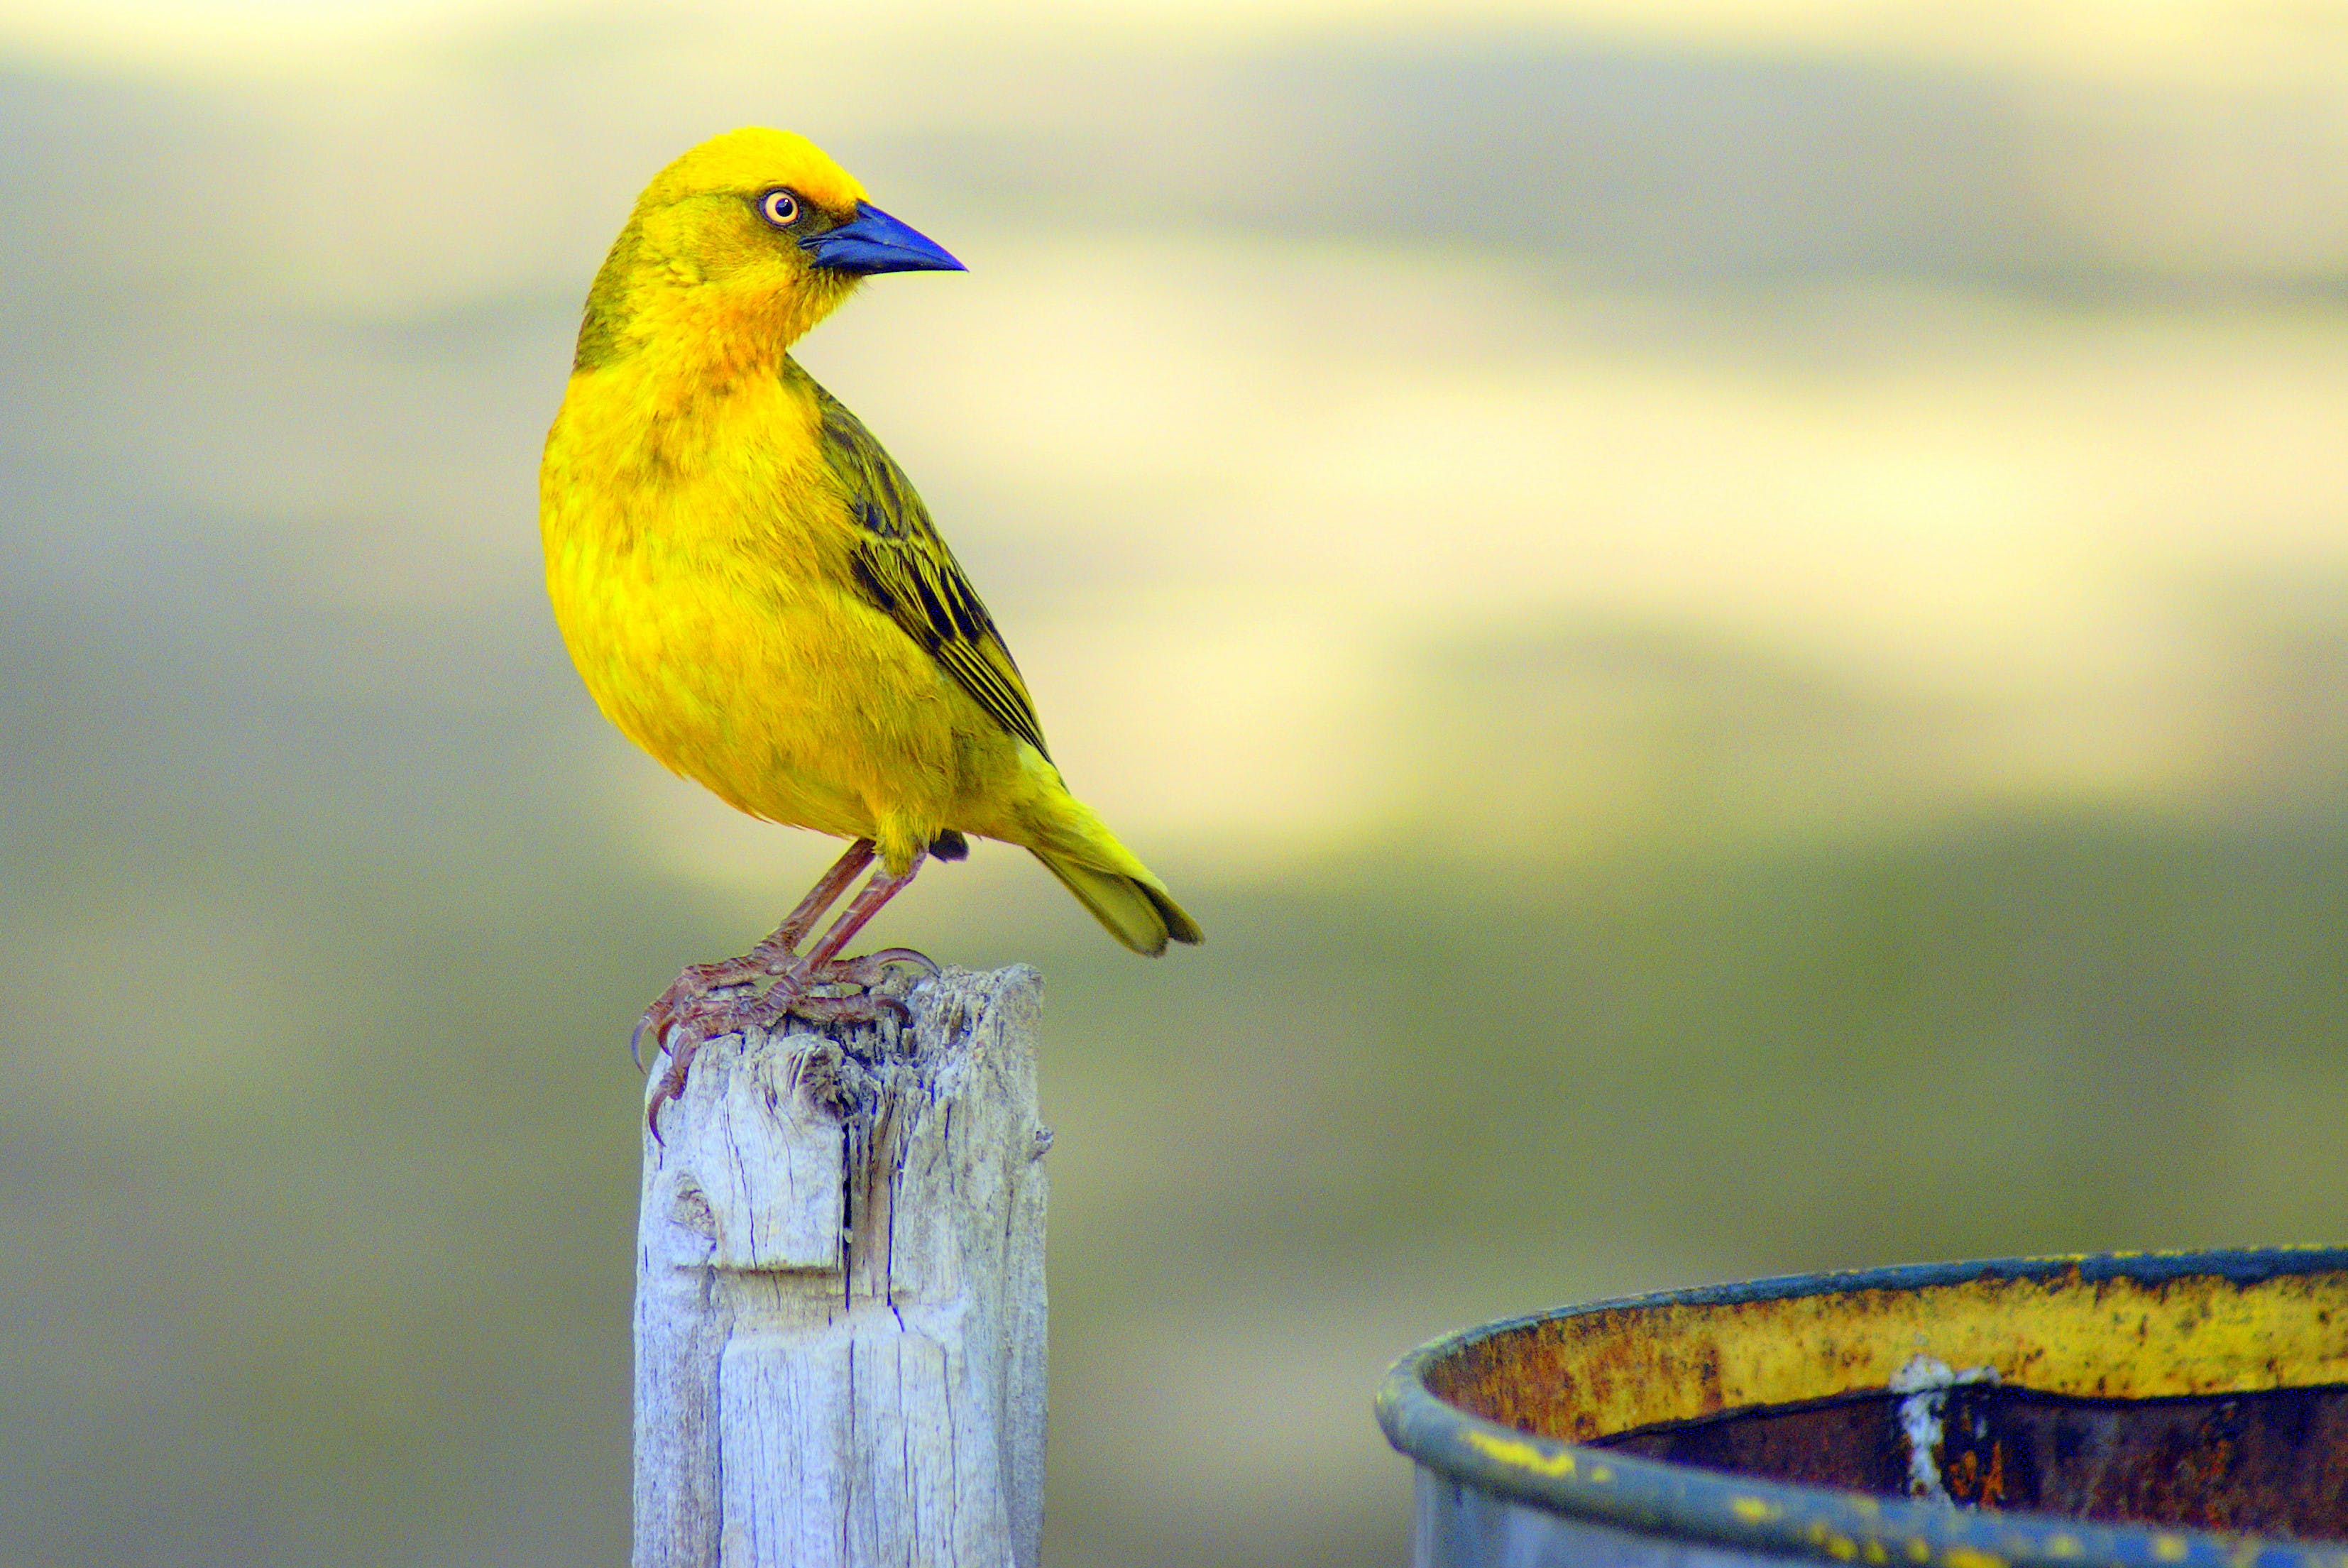 Focal Focus Photography of Perching Yellow and Blue Short-beak Bird